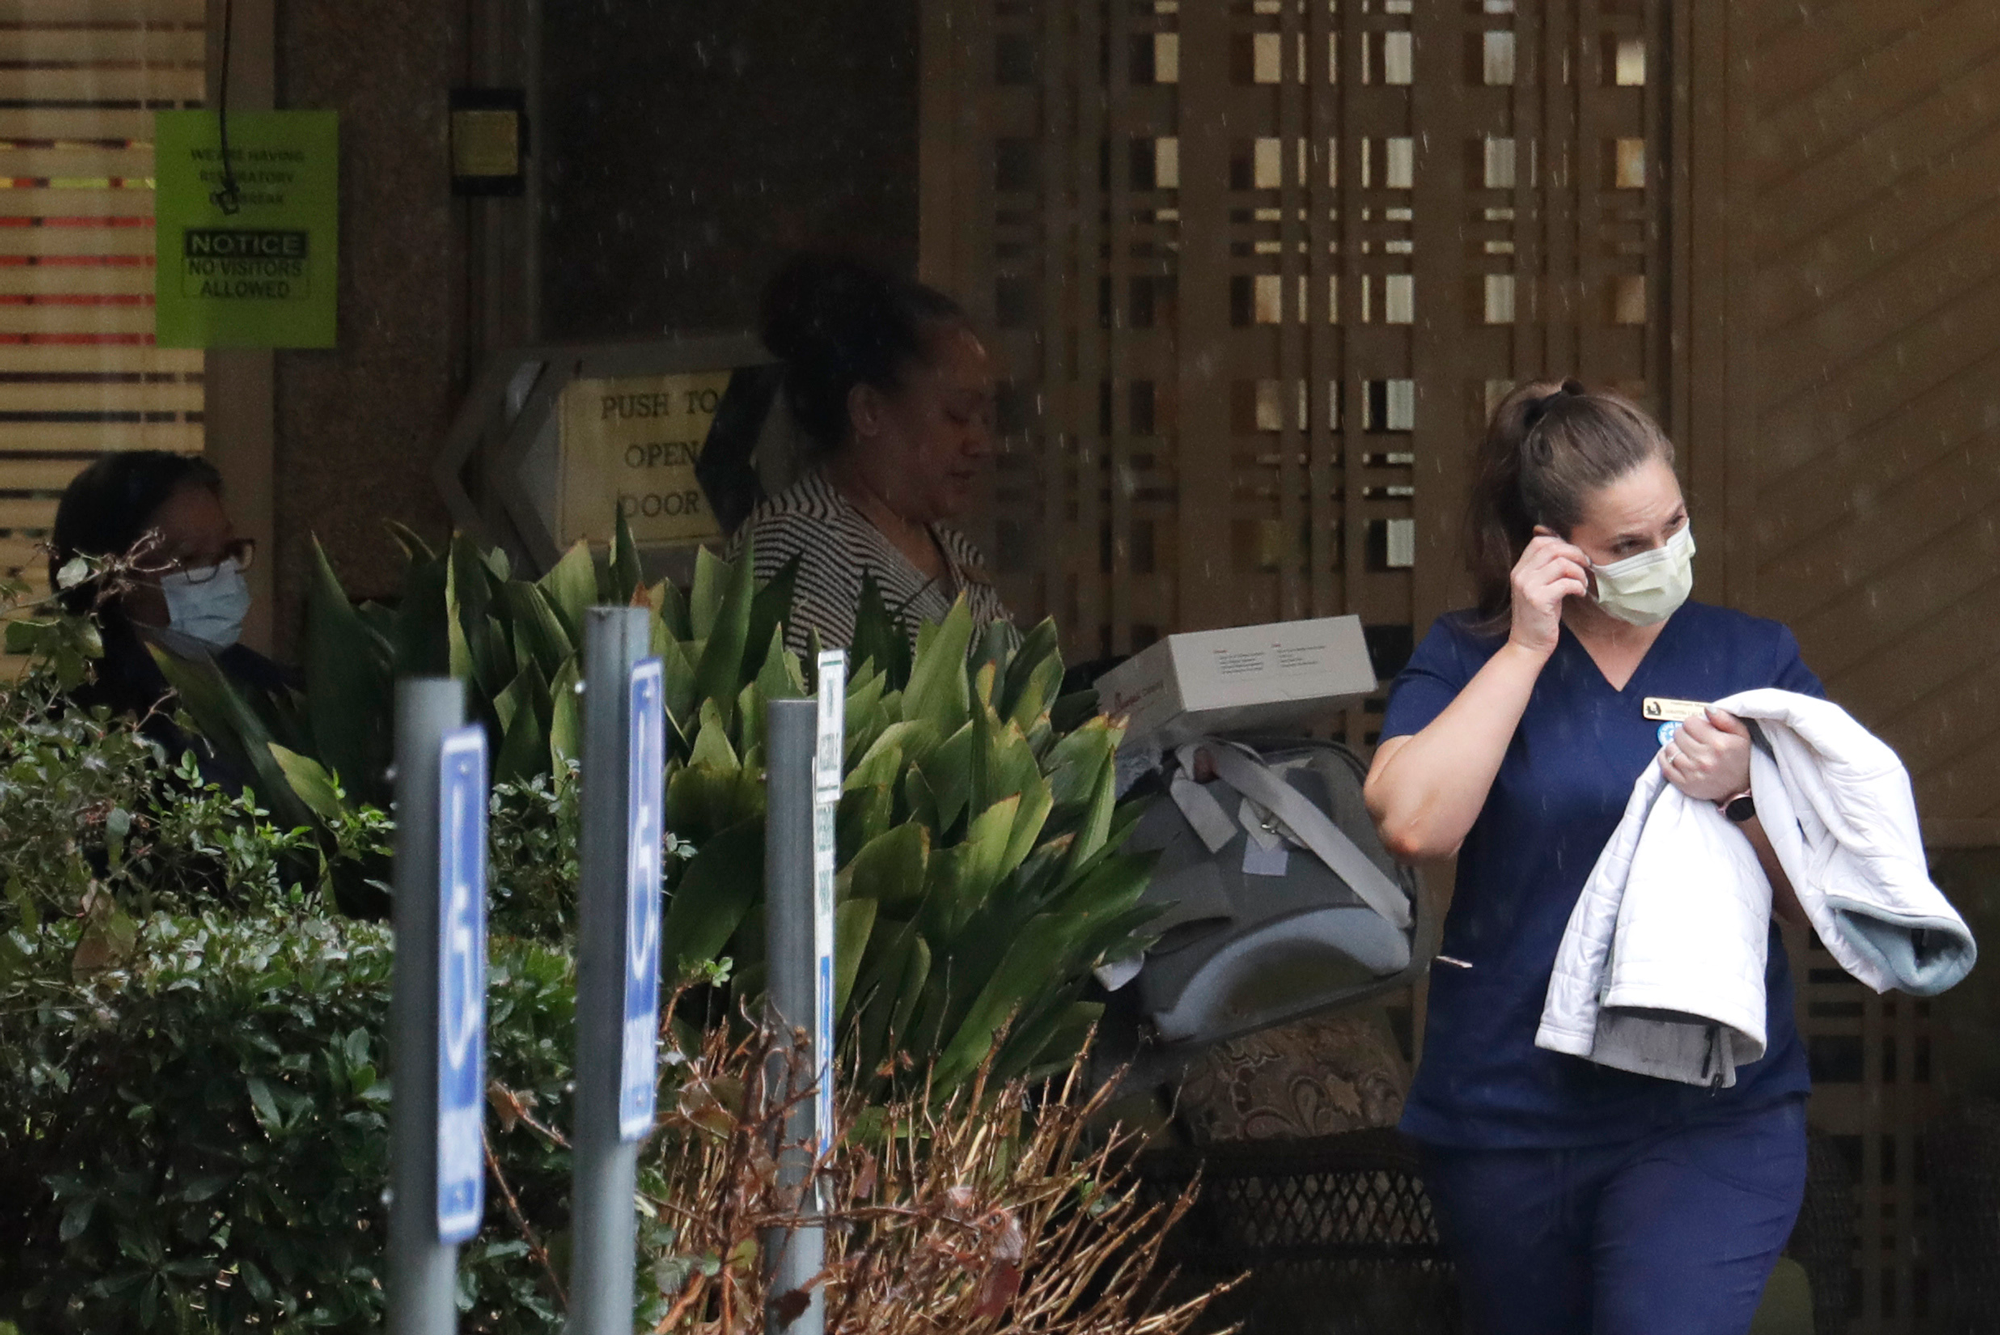 A worker at the Life Care Center in Kirkland, Wash., near Seattle, wears a mask as she leaves the building